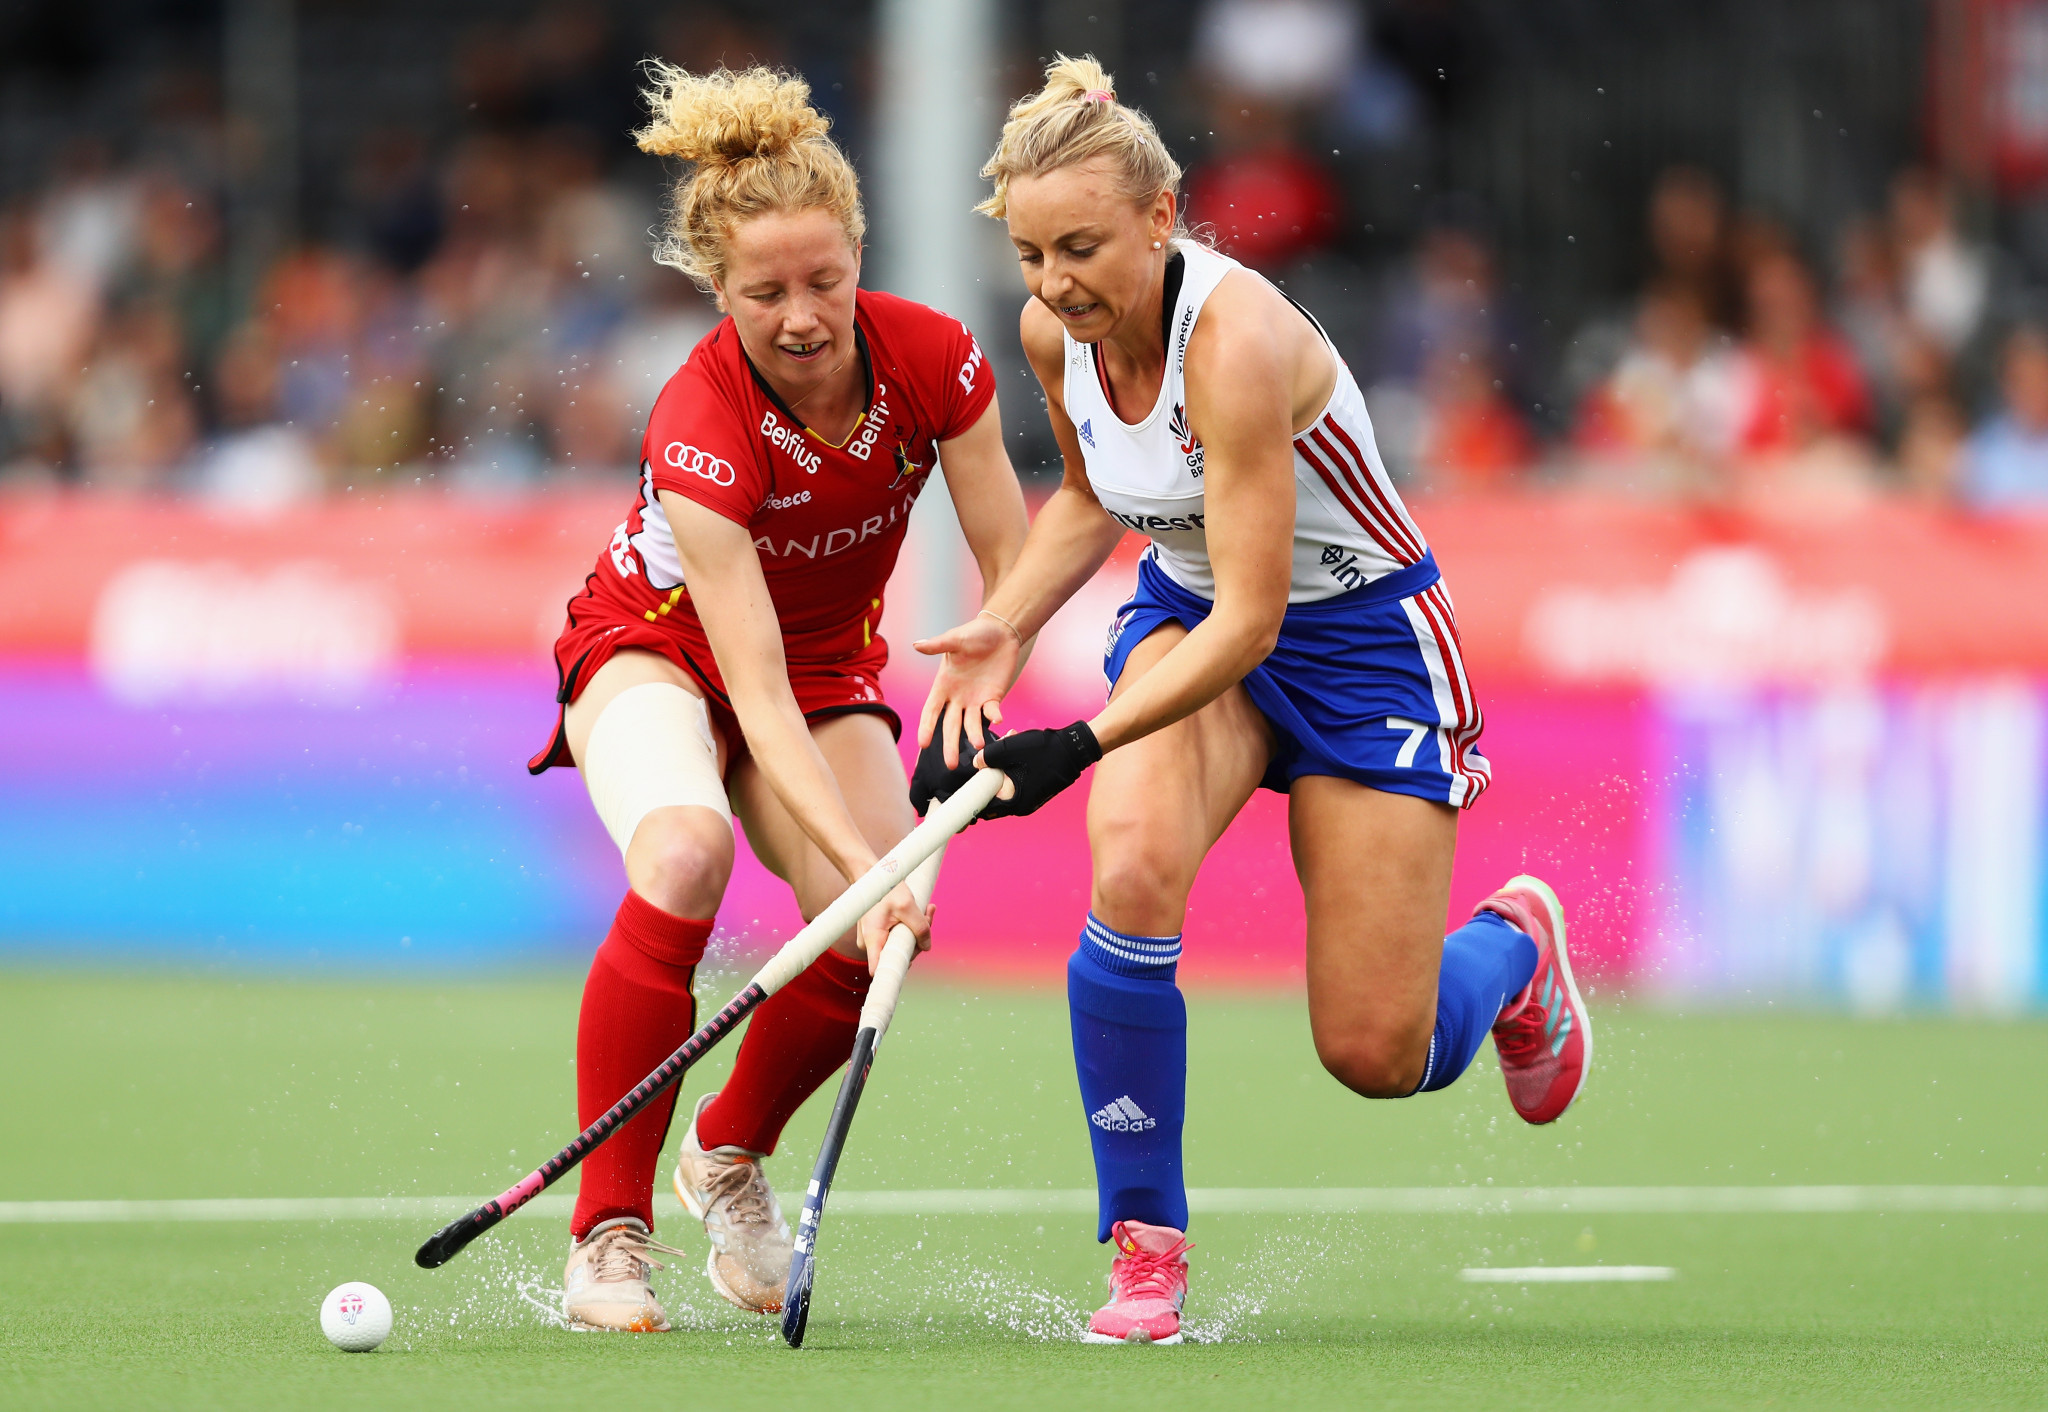 Belgium recorded an emphatic 4-1 victory against Olympic champions Britain in the women's FIH Pro League ©Getty Images